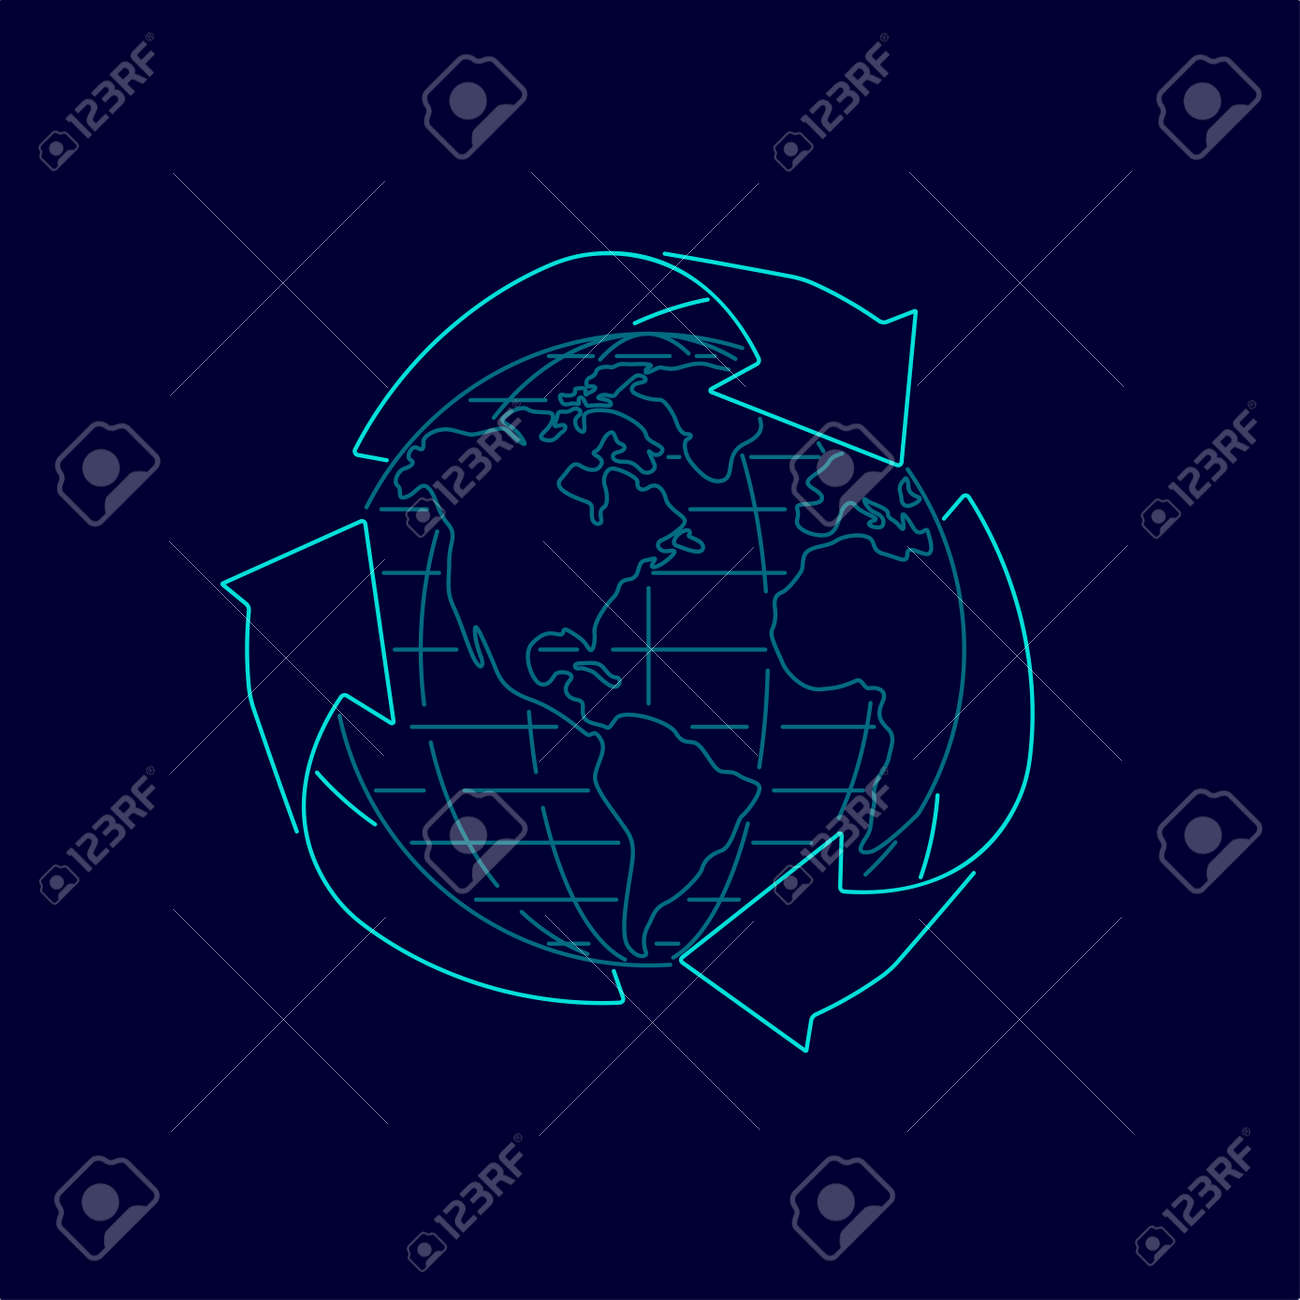 concept of eco friendly, graphic of recycle symbol with globe - 171494739